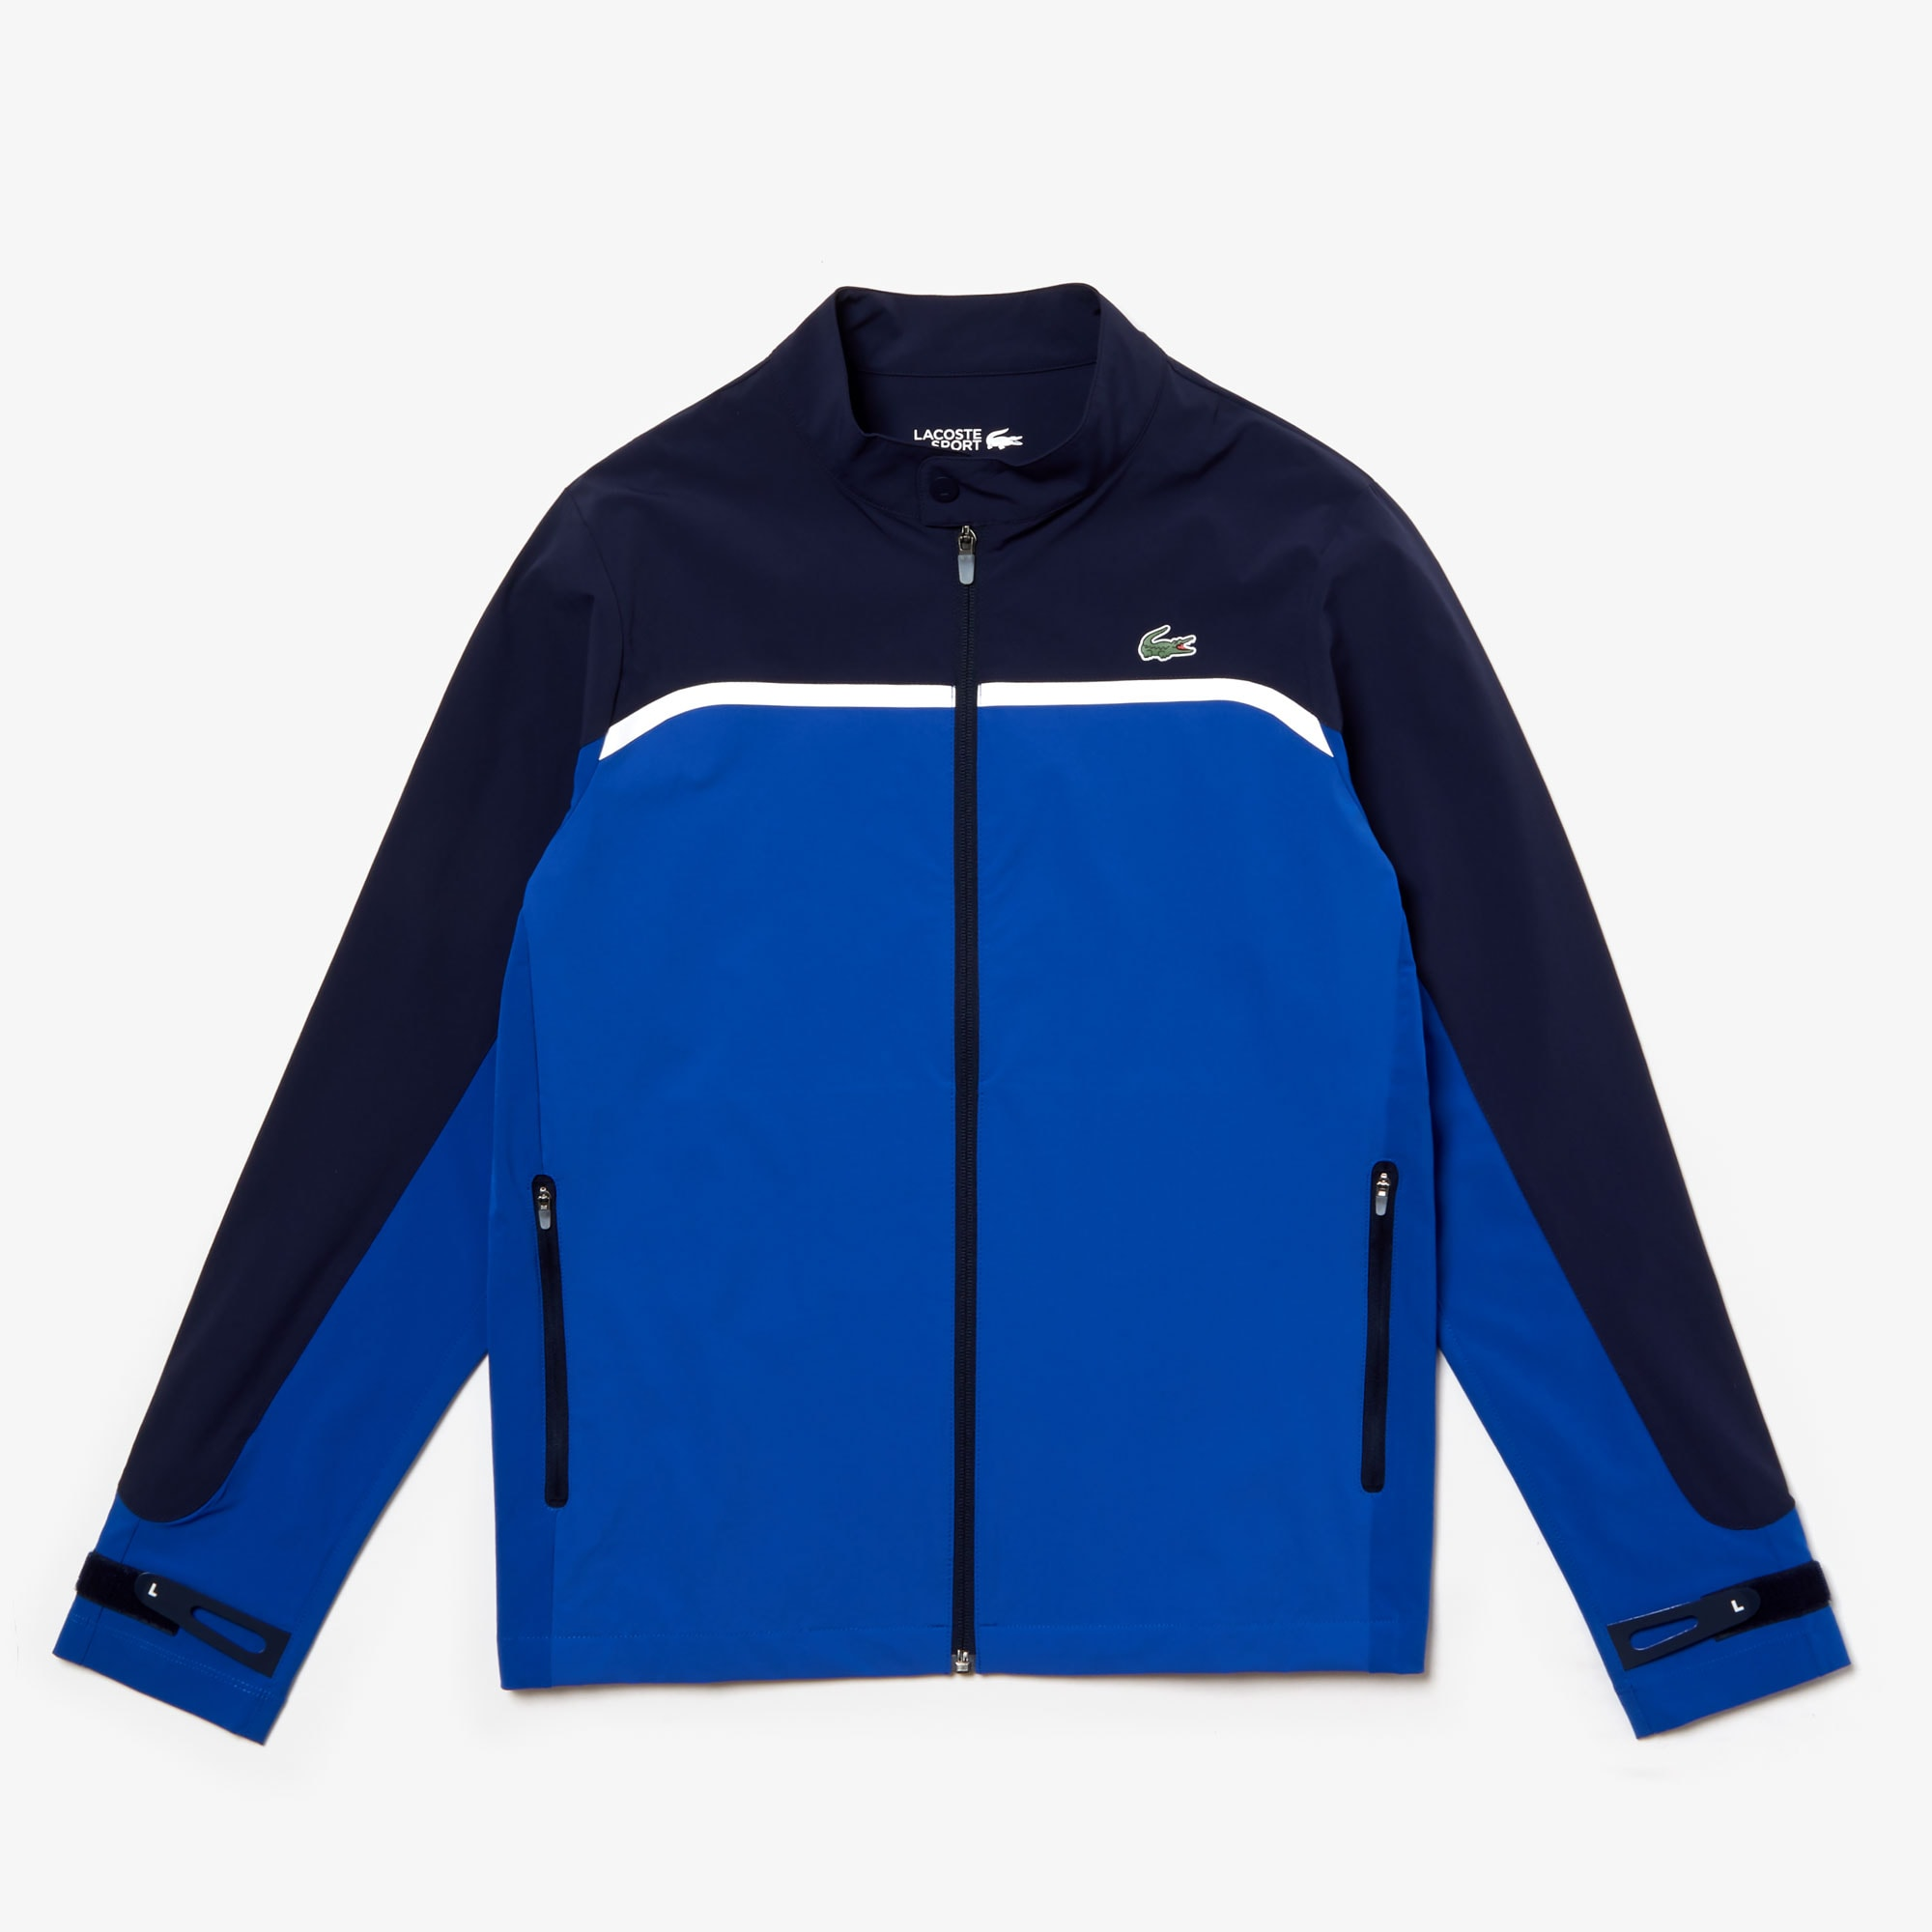 cbbb4638c Men's Jackets and Coats   Lacoste Outerwear   LACOSTE